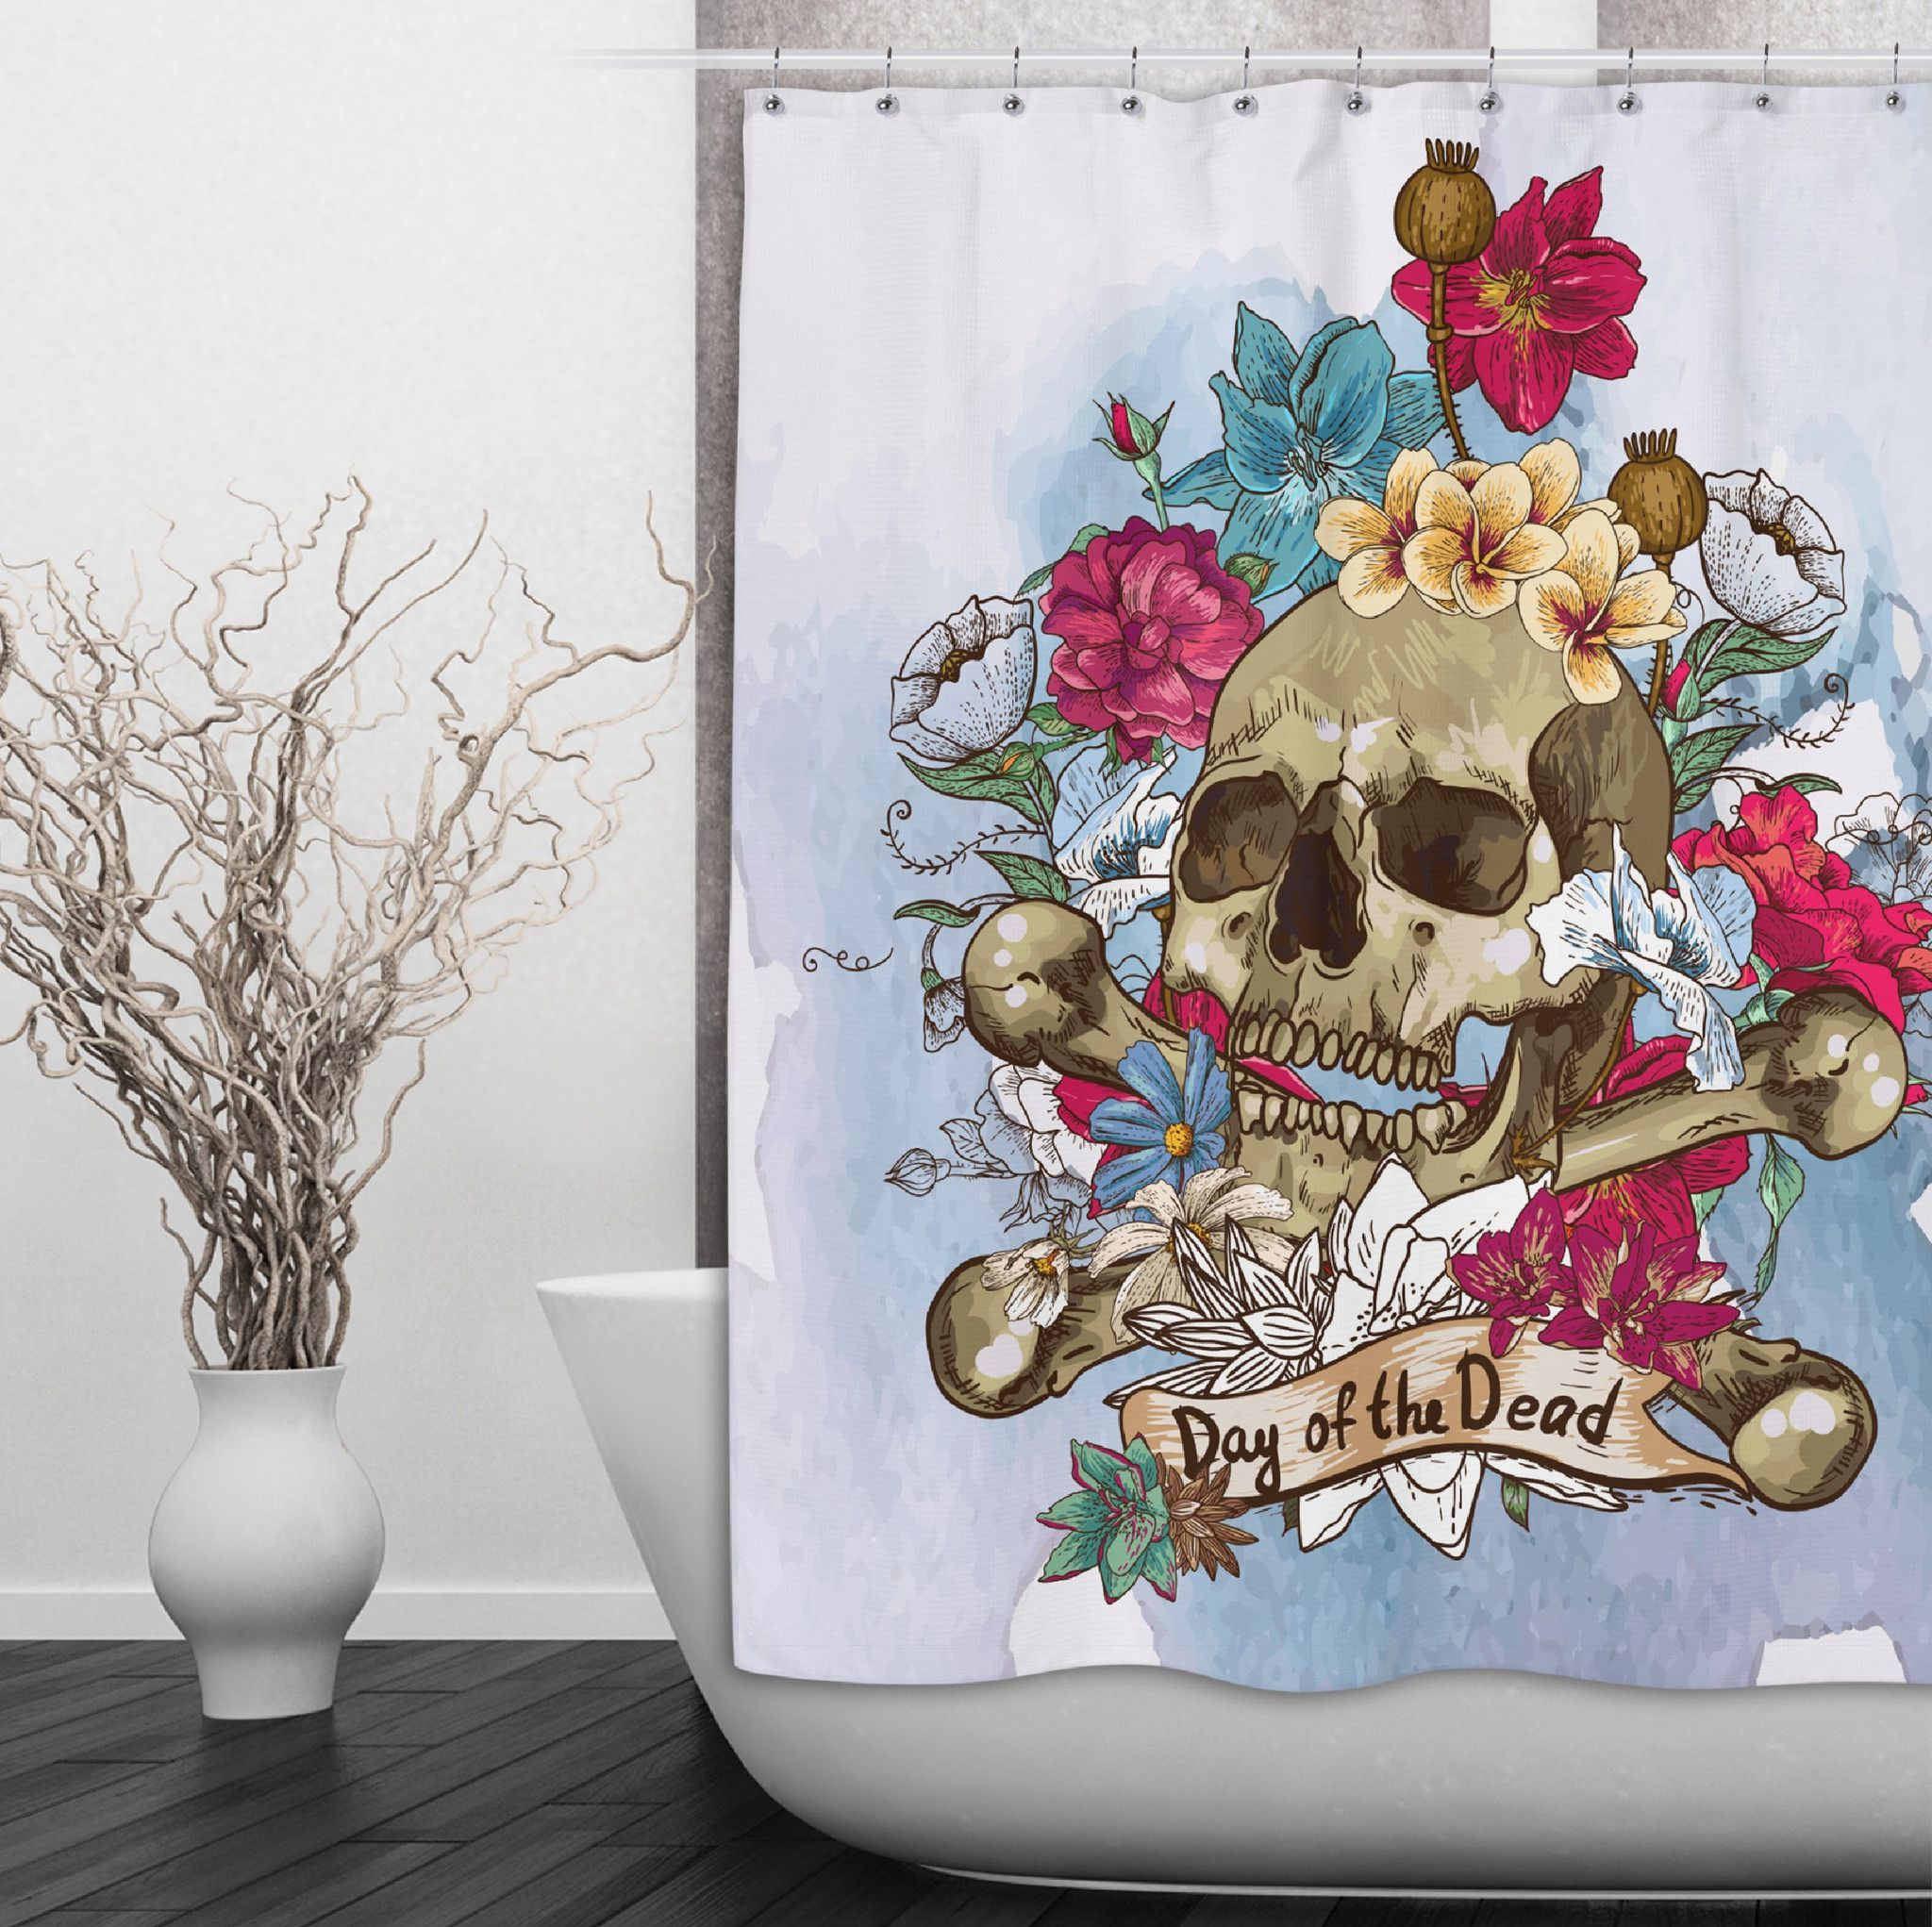 These Curtains Measure 69 X 70 Or 90 And Are 100 Polyester I Print Your Custom Image Right Onto The Fabric Using A Process That Is Soft To